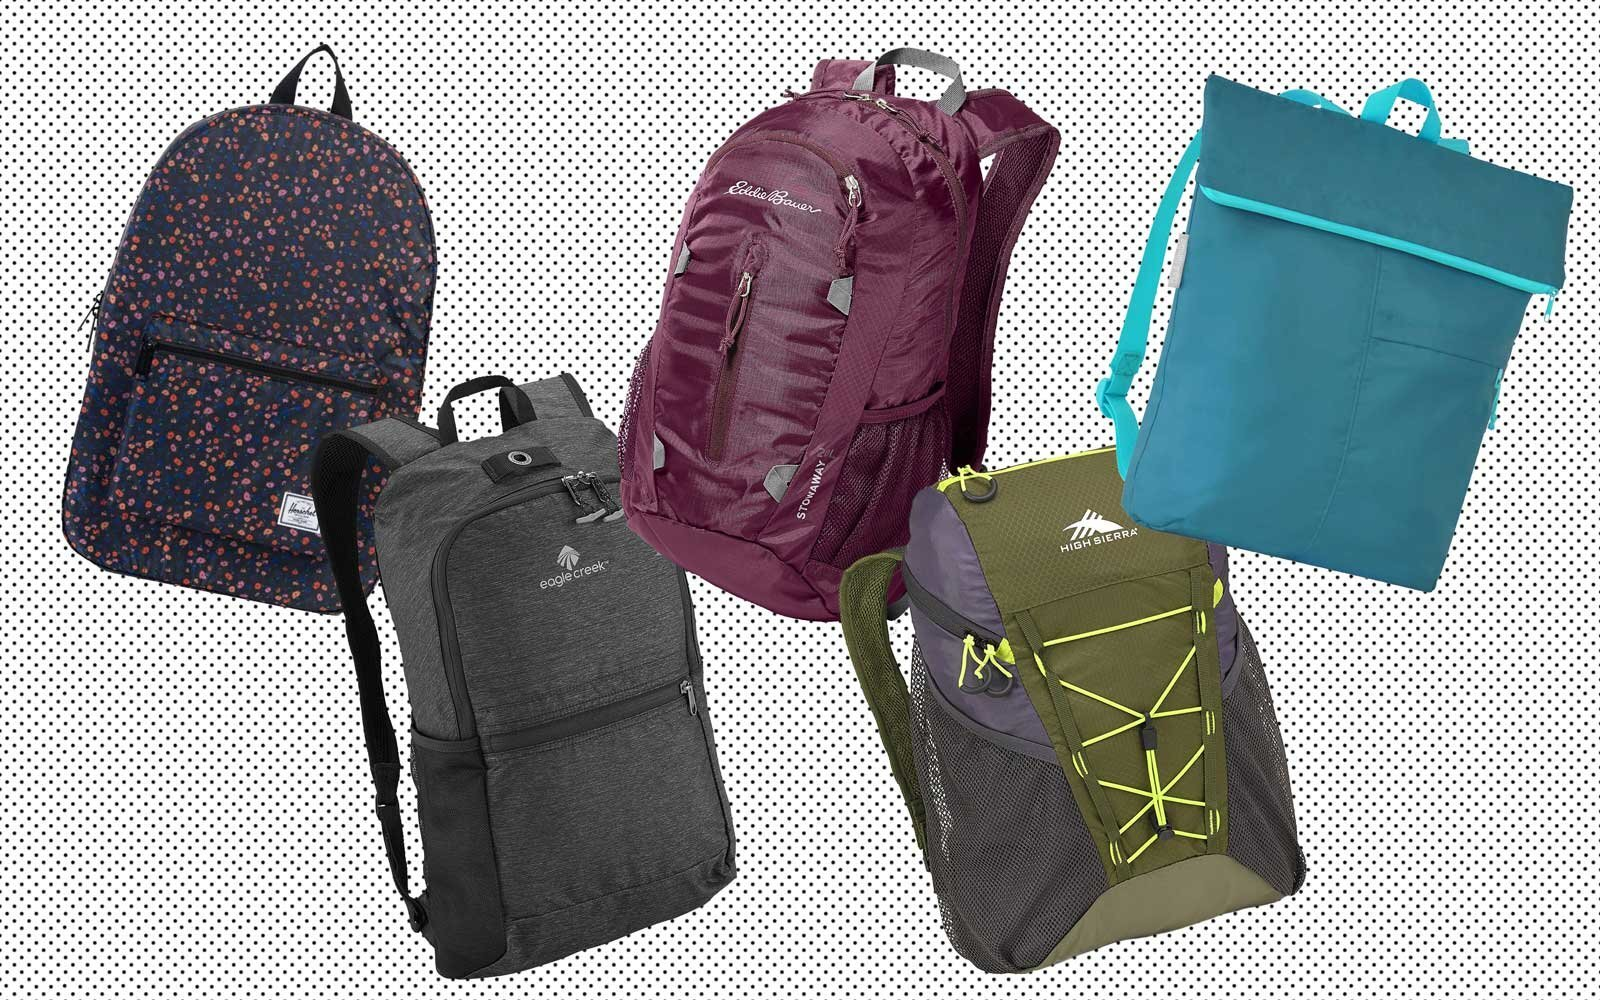 a5e2facb90 11 Packable Backpacks for Travelers Who Always Bring Home More Than They  Packed